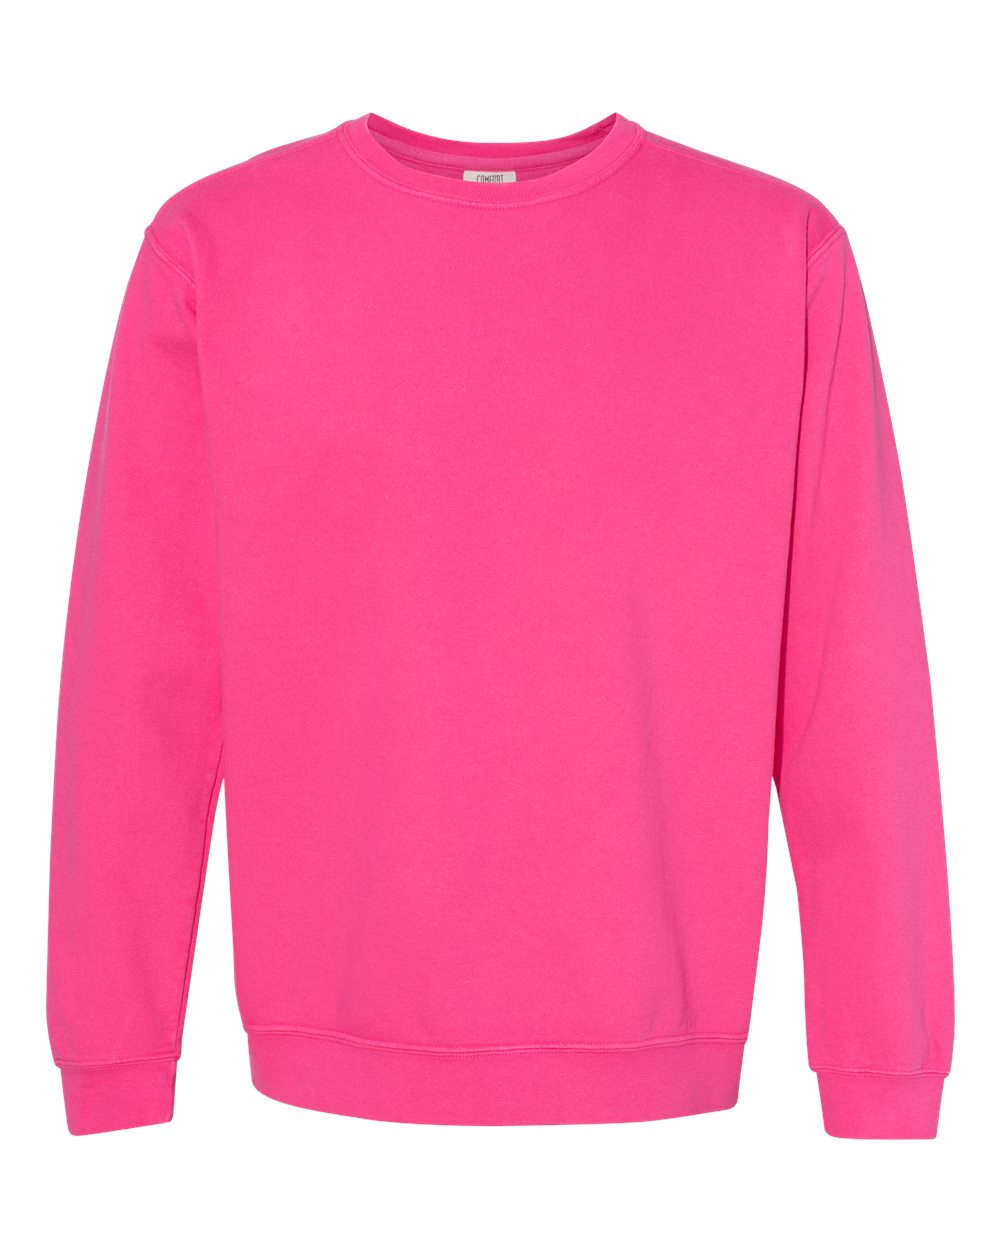 Comfort-Colors-Mens-Garment-Dyed-Ringspun-Crewneck-Sweatshirt-1566-up-to-3XL miniature 36